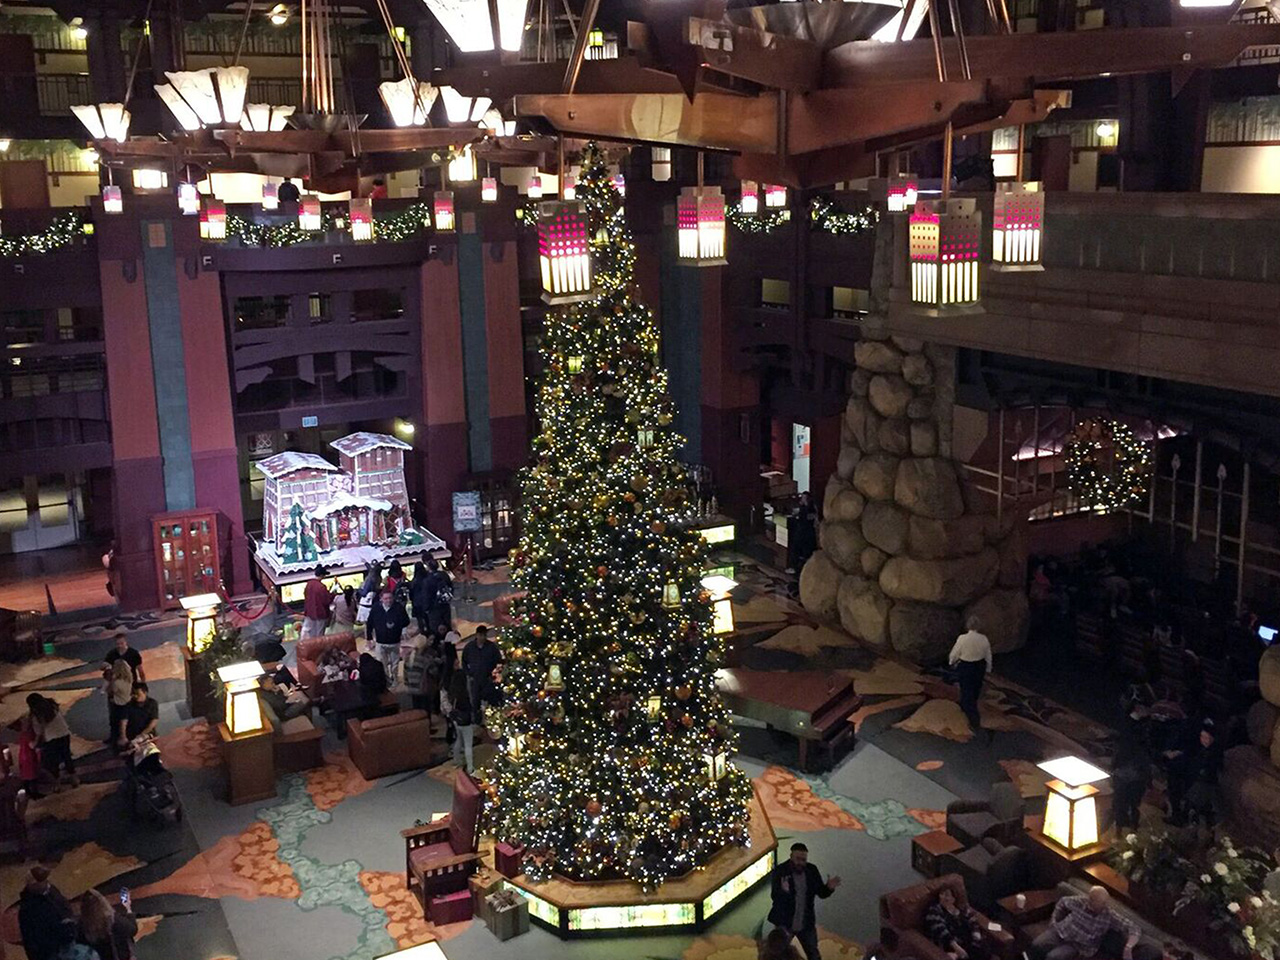 Disneyland Grand Californian Hotel